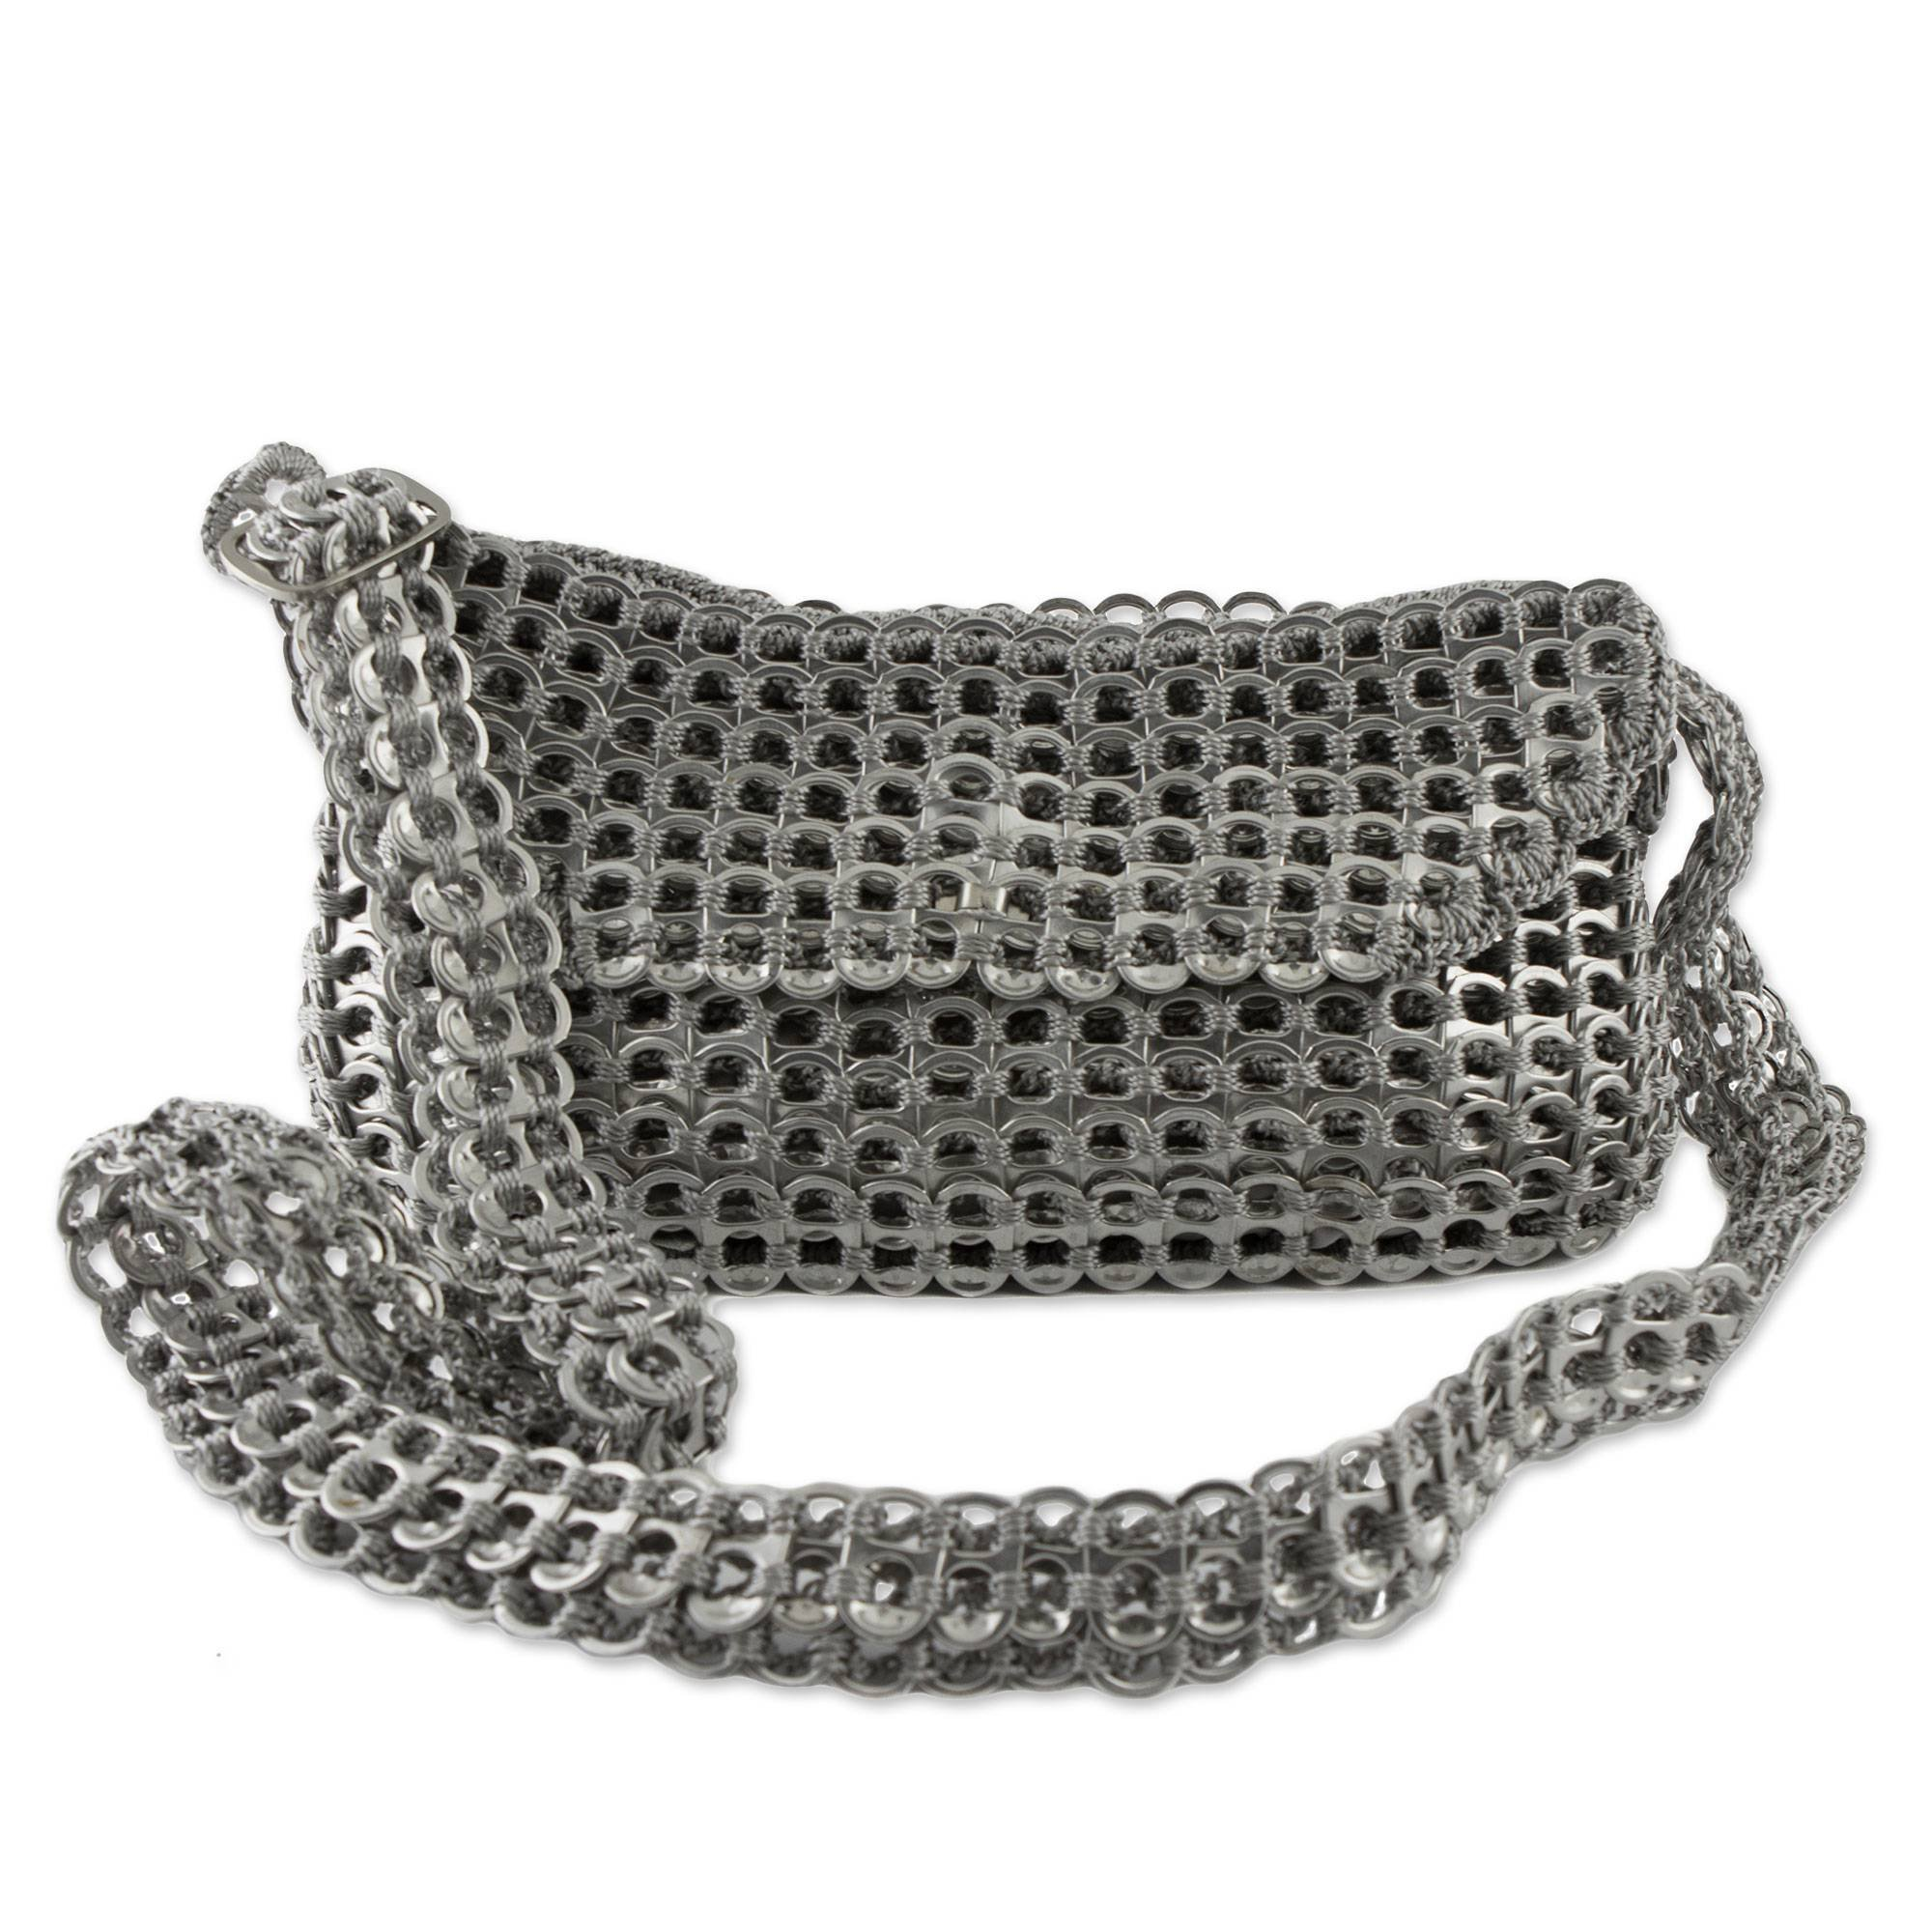 NOVICA Metallic Recycled Aluminum Shoulder Bags, 'Chain Mail Elegance'